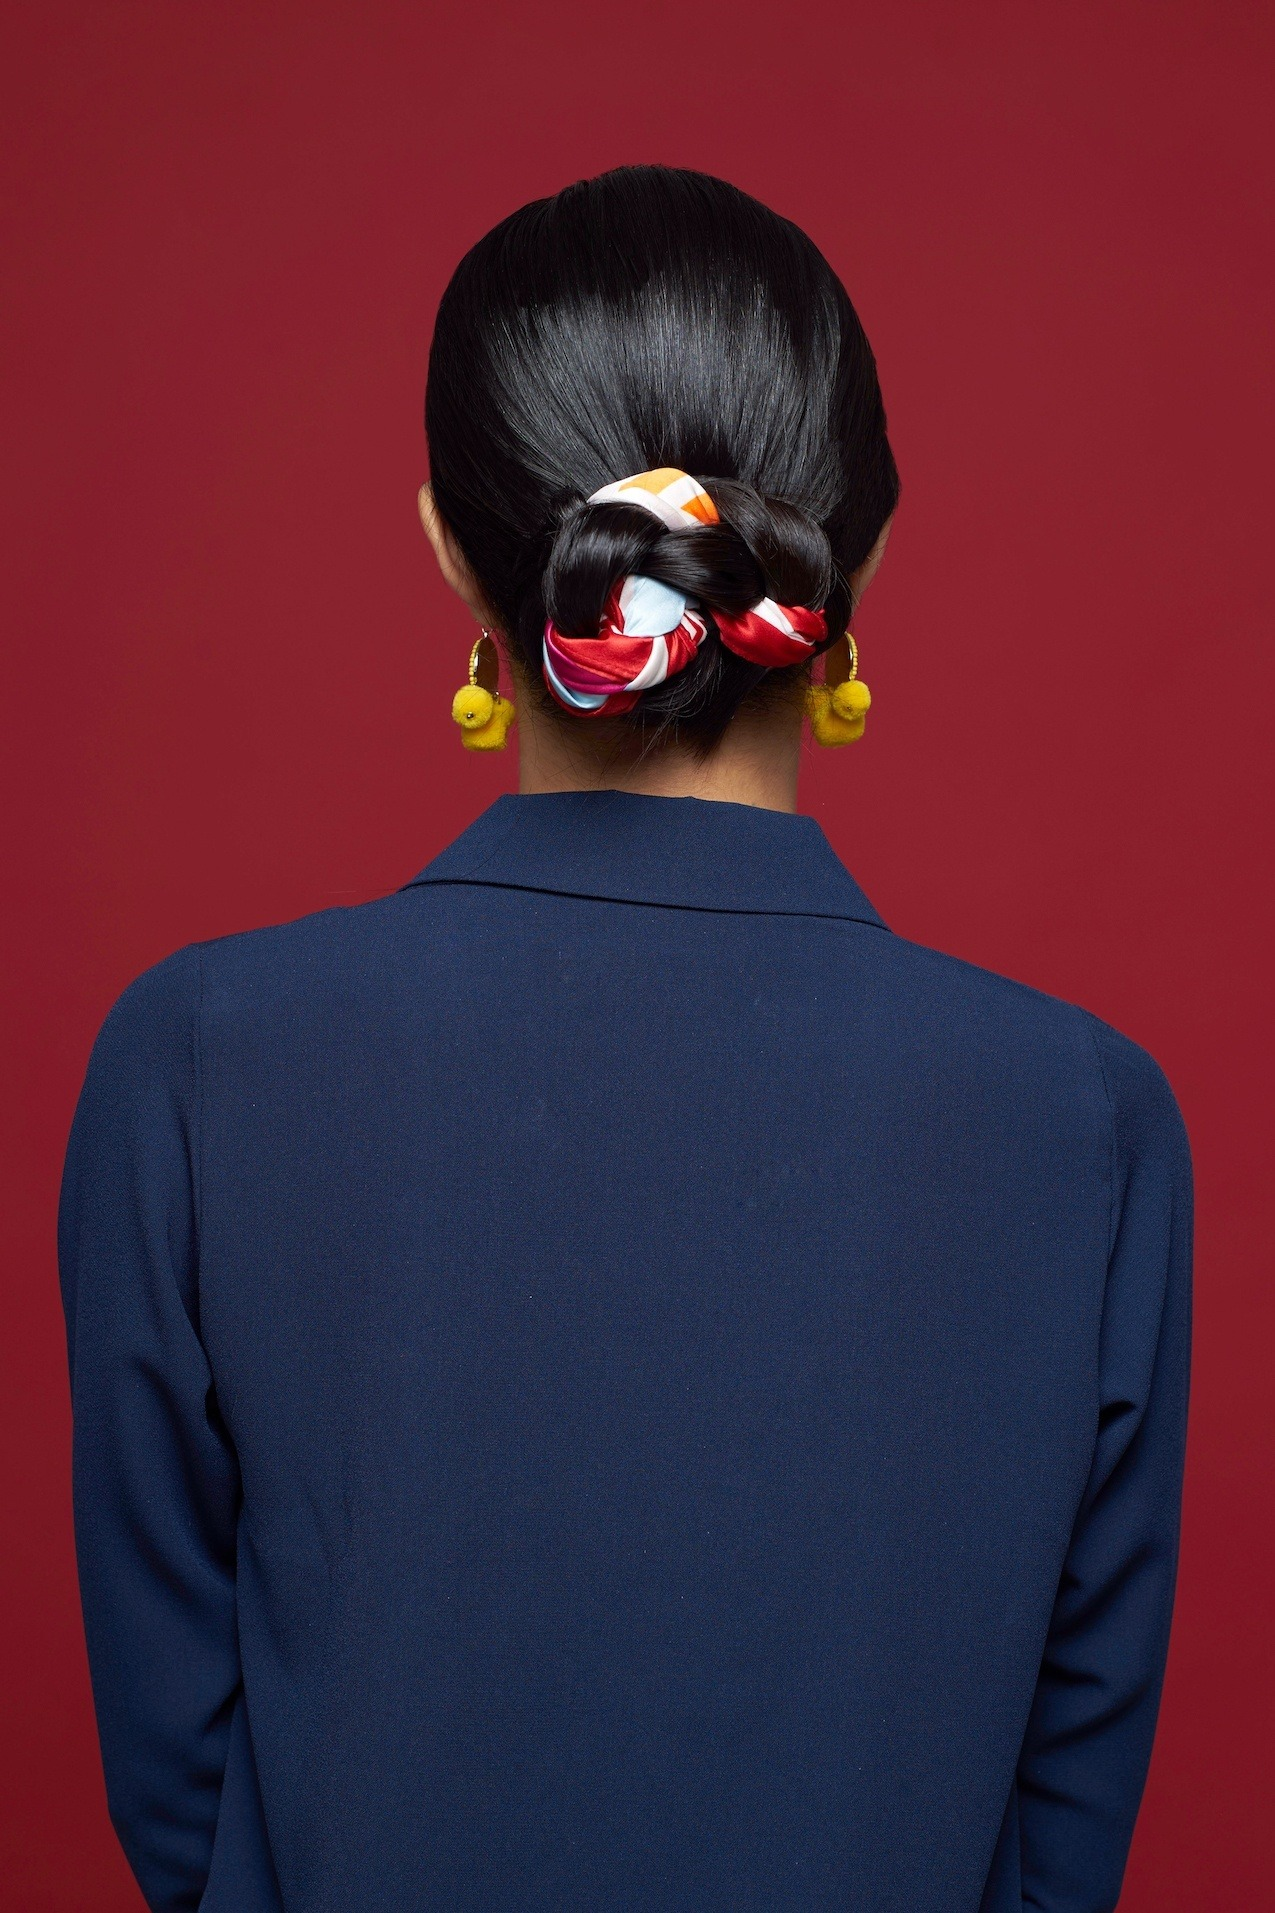 Chinese New Year hairstyles: Model with dark brown straight hair in low bun with scarf detail wearing a navy blazer jacket.